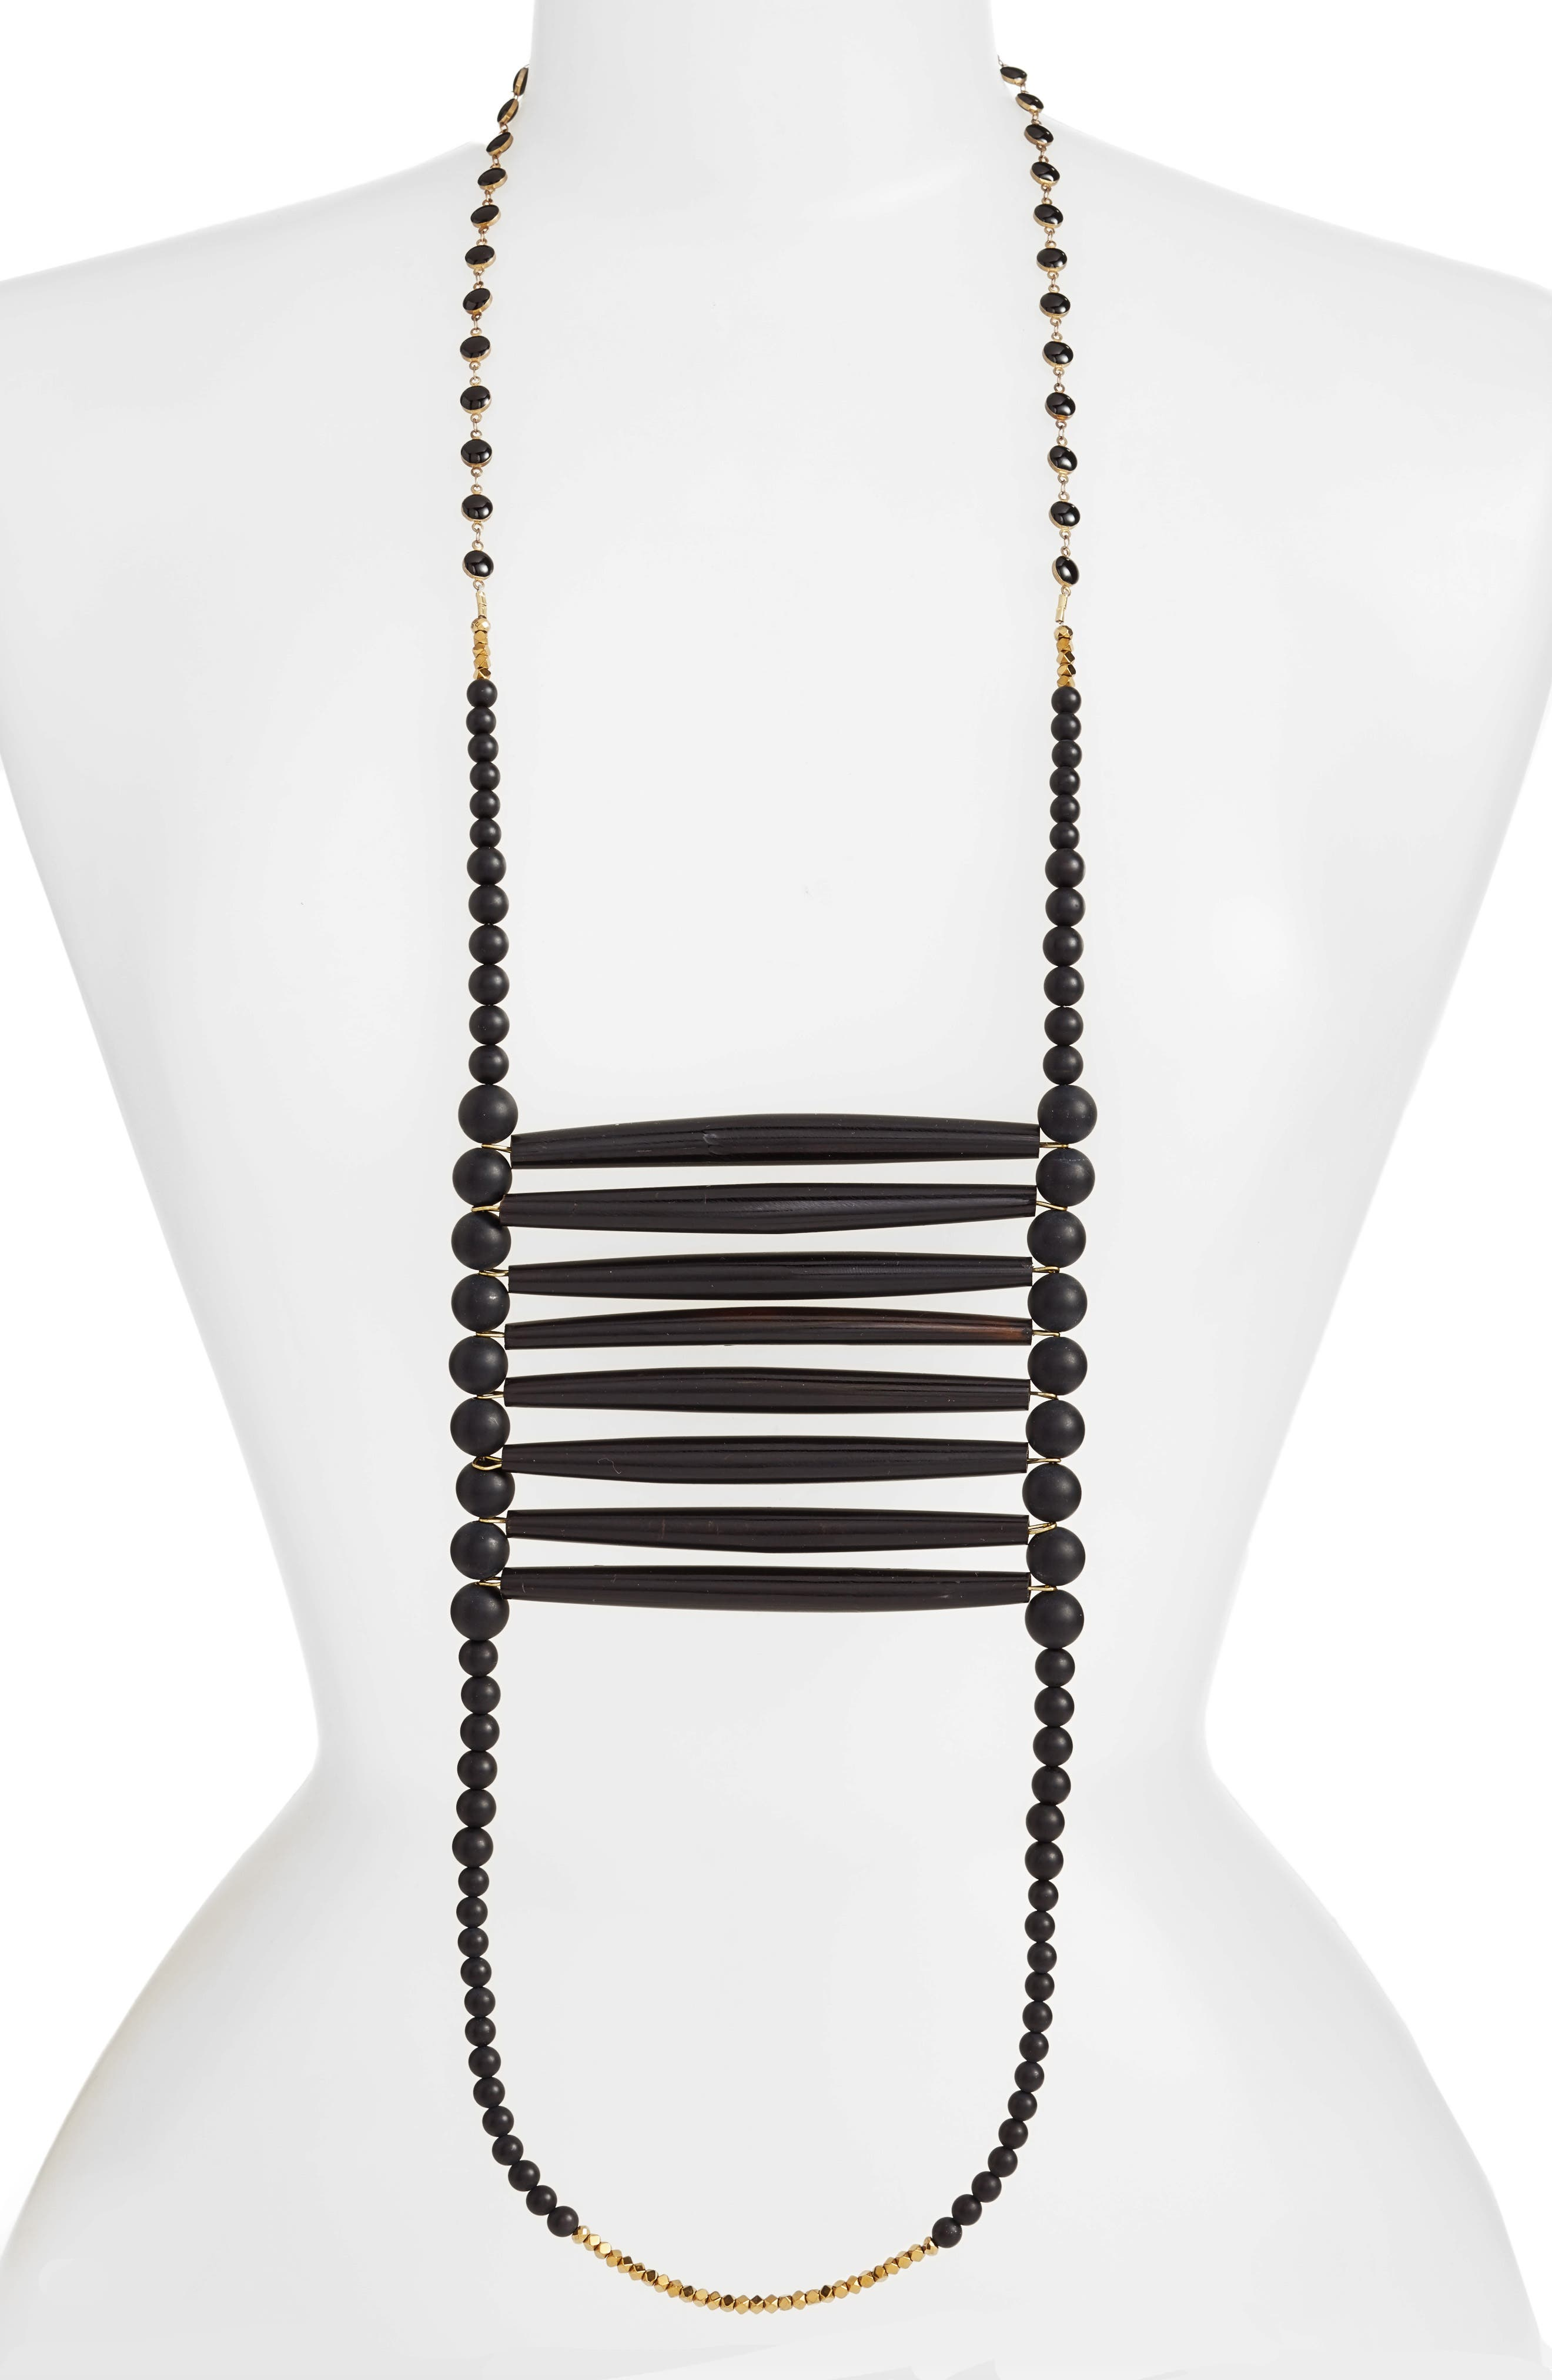 Main Image - INK + ALLOY Into the Black Extra Long Beaded Necklace